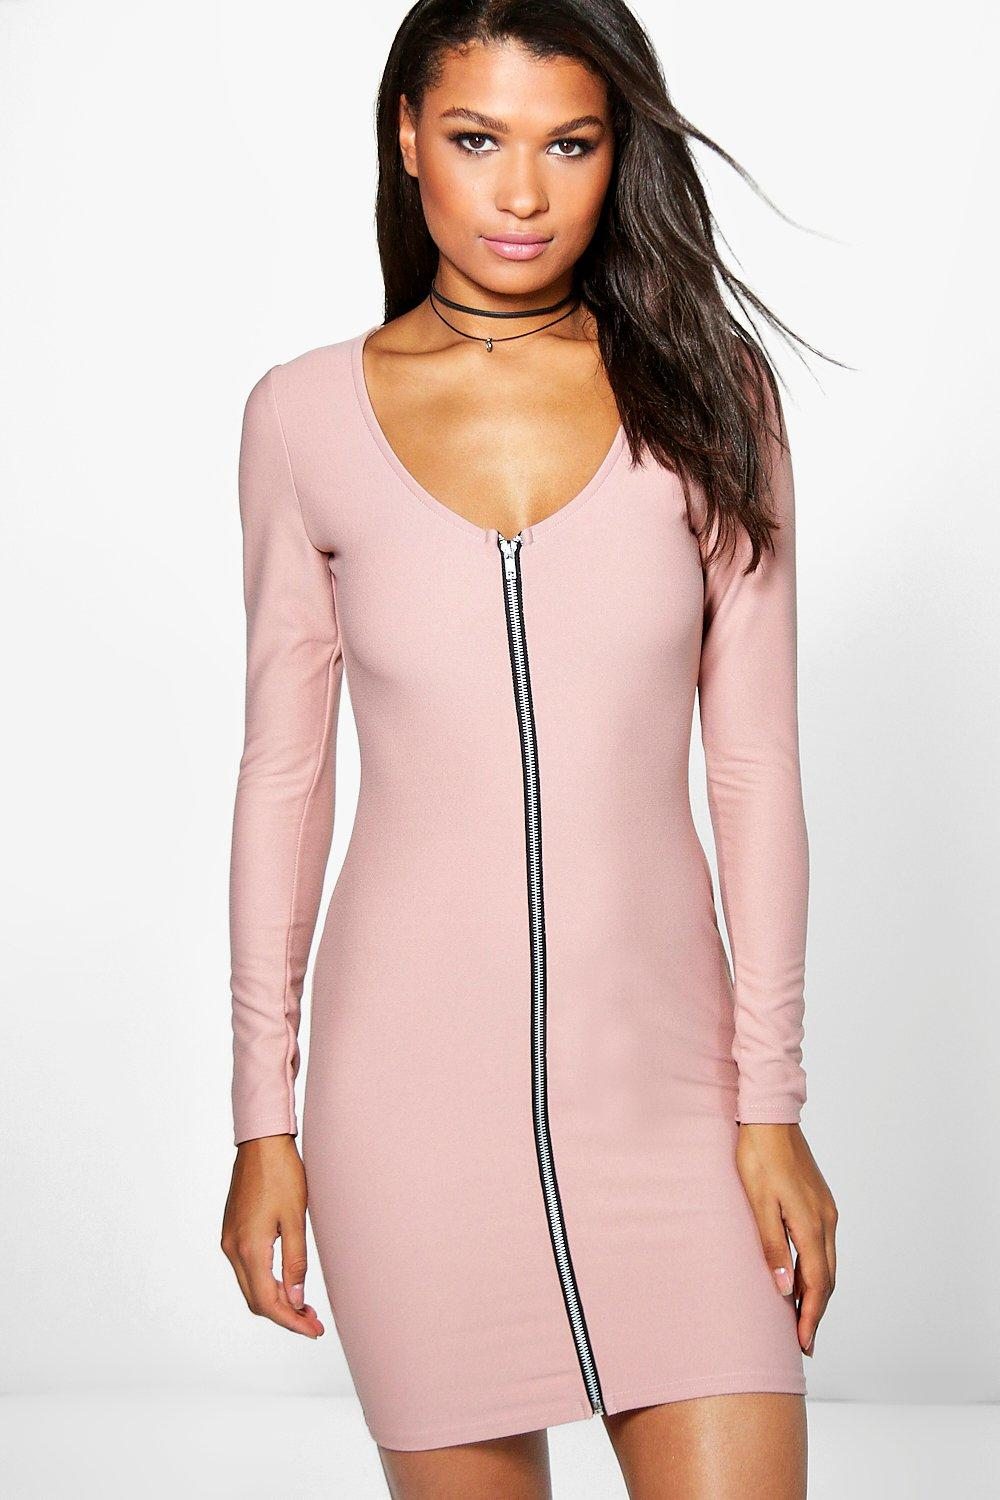 Roxy Long Sleeve Zip Through Bodycon Dress